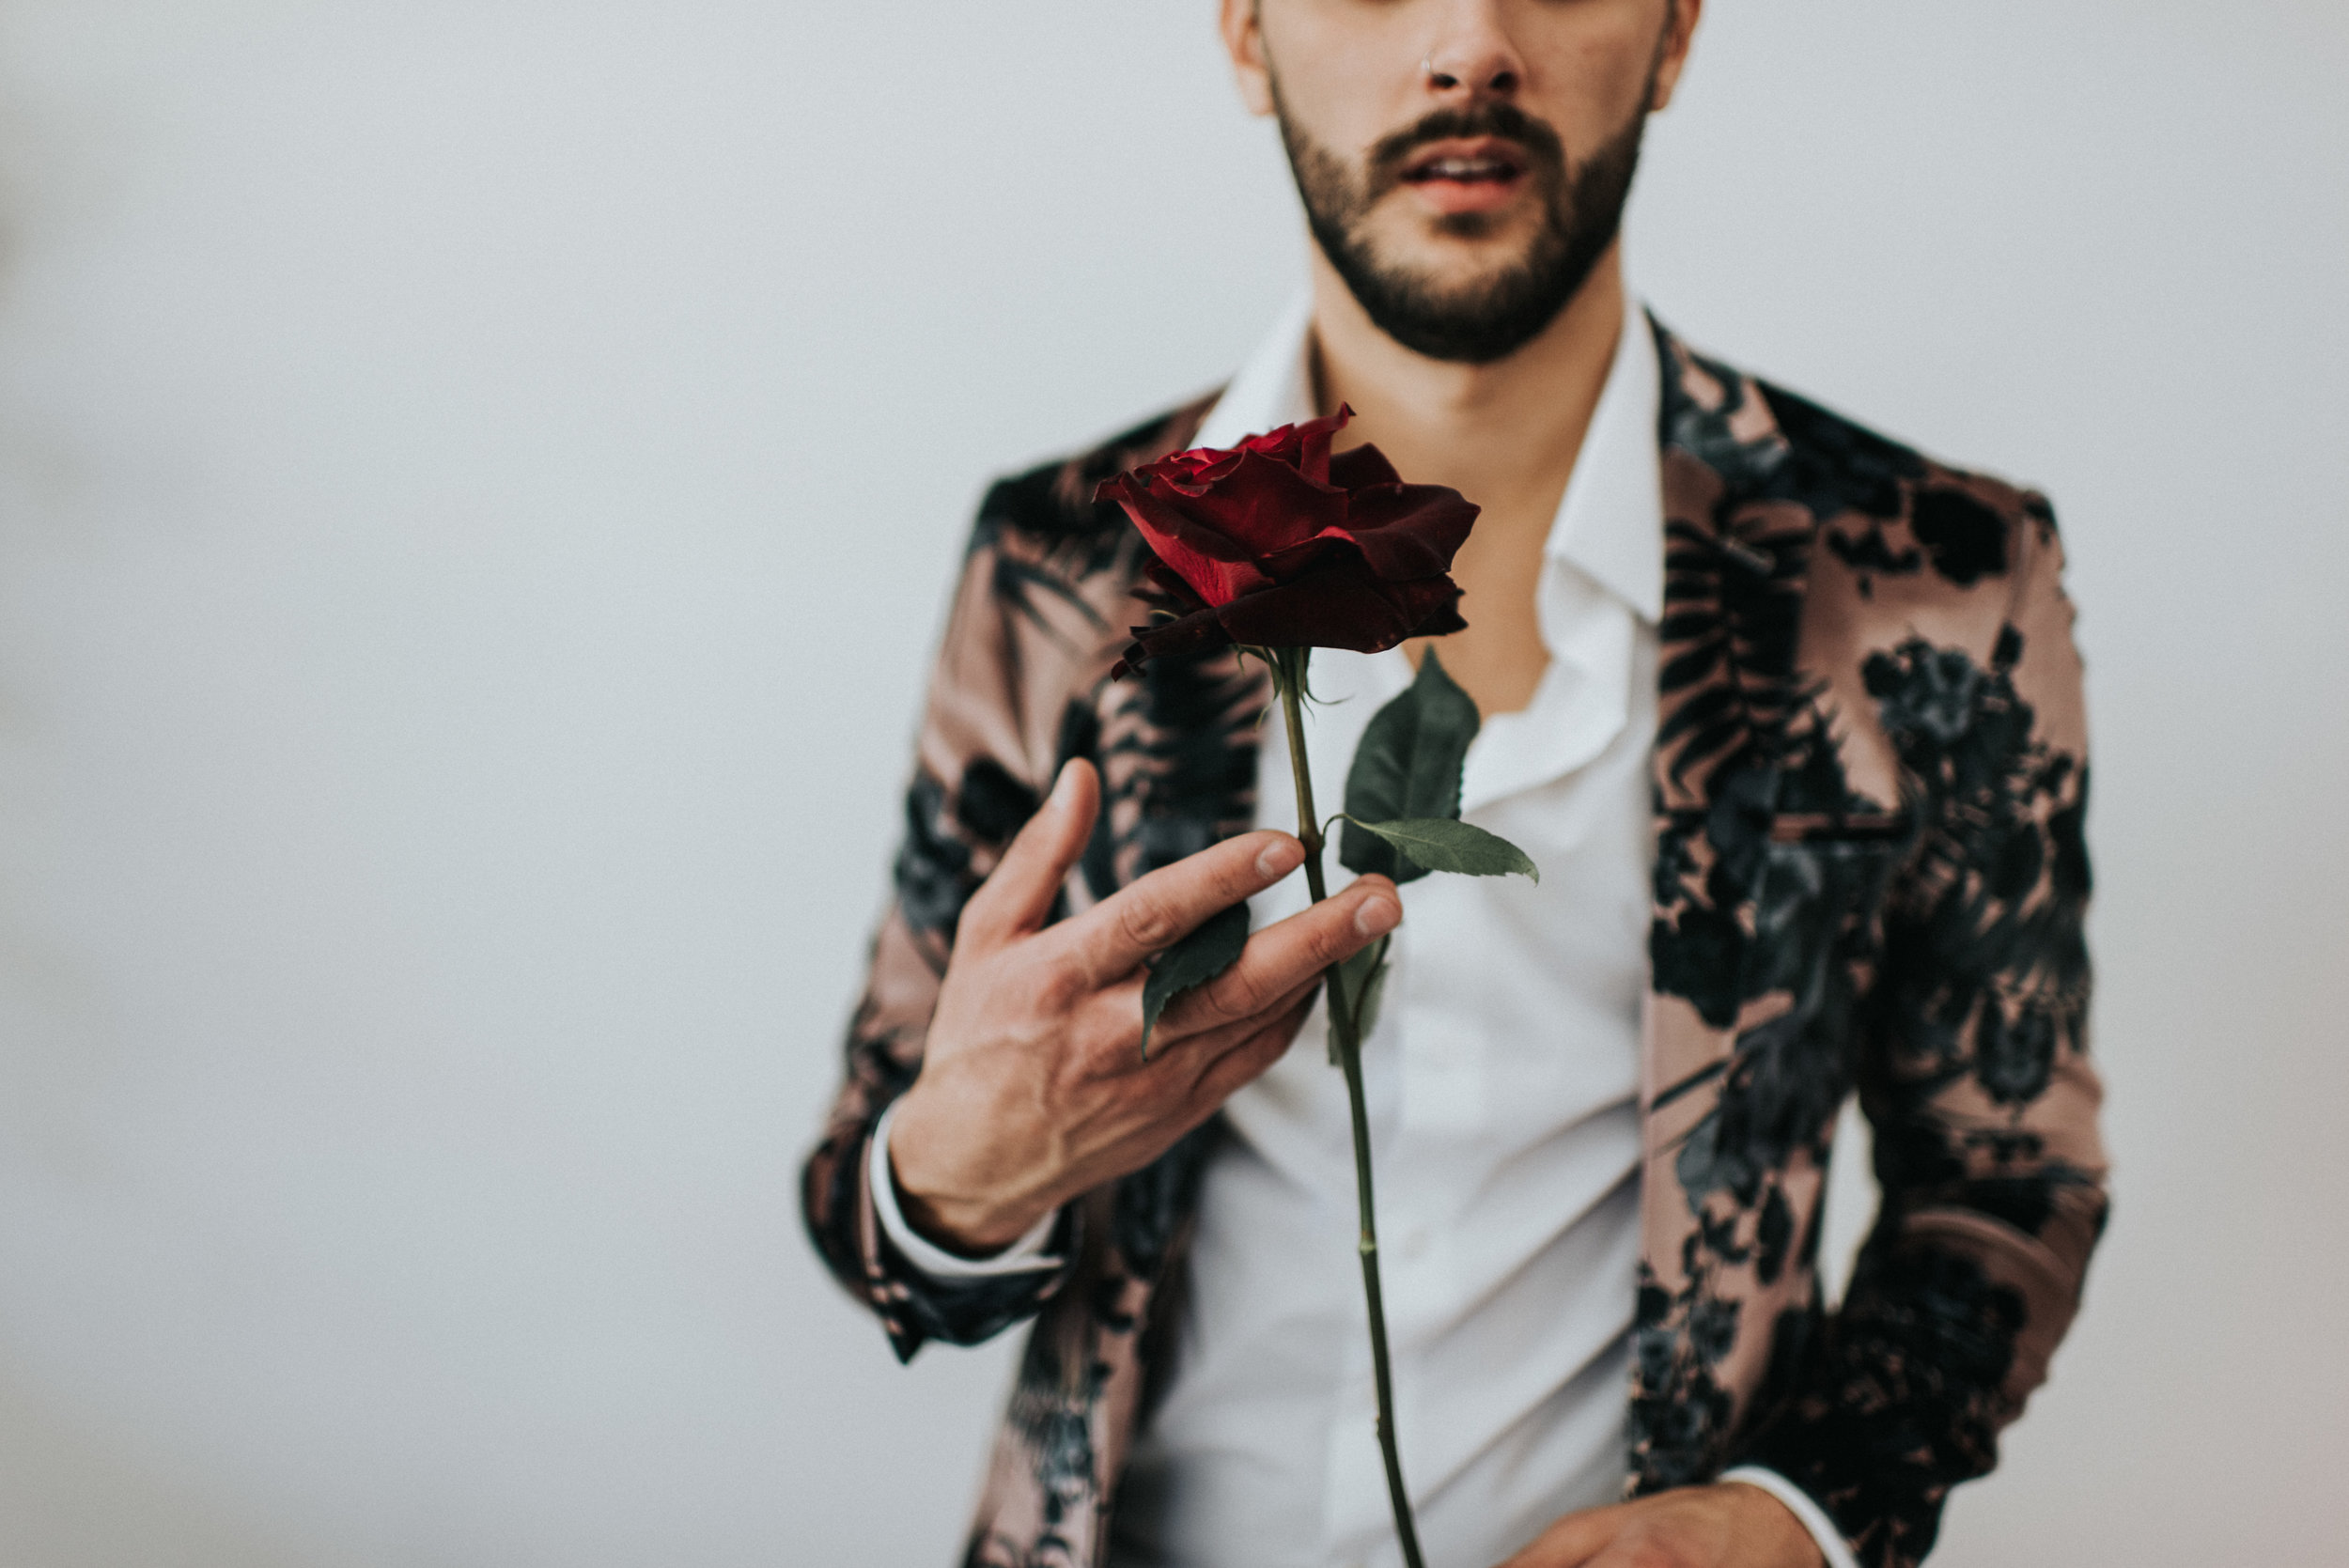 Millennial Pink Inspired Wedding - Groom in Floral Suit